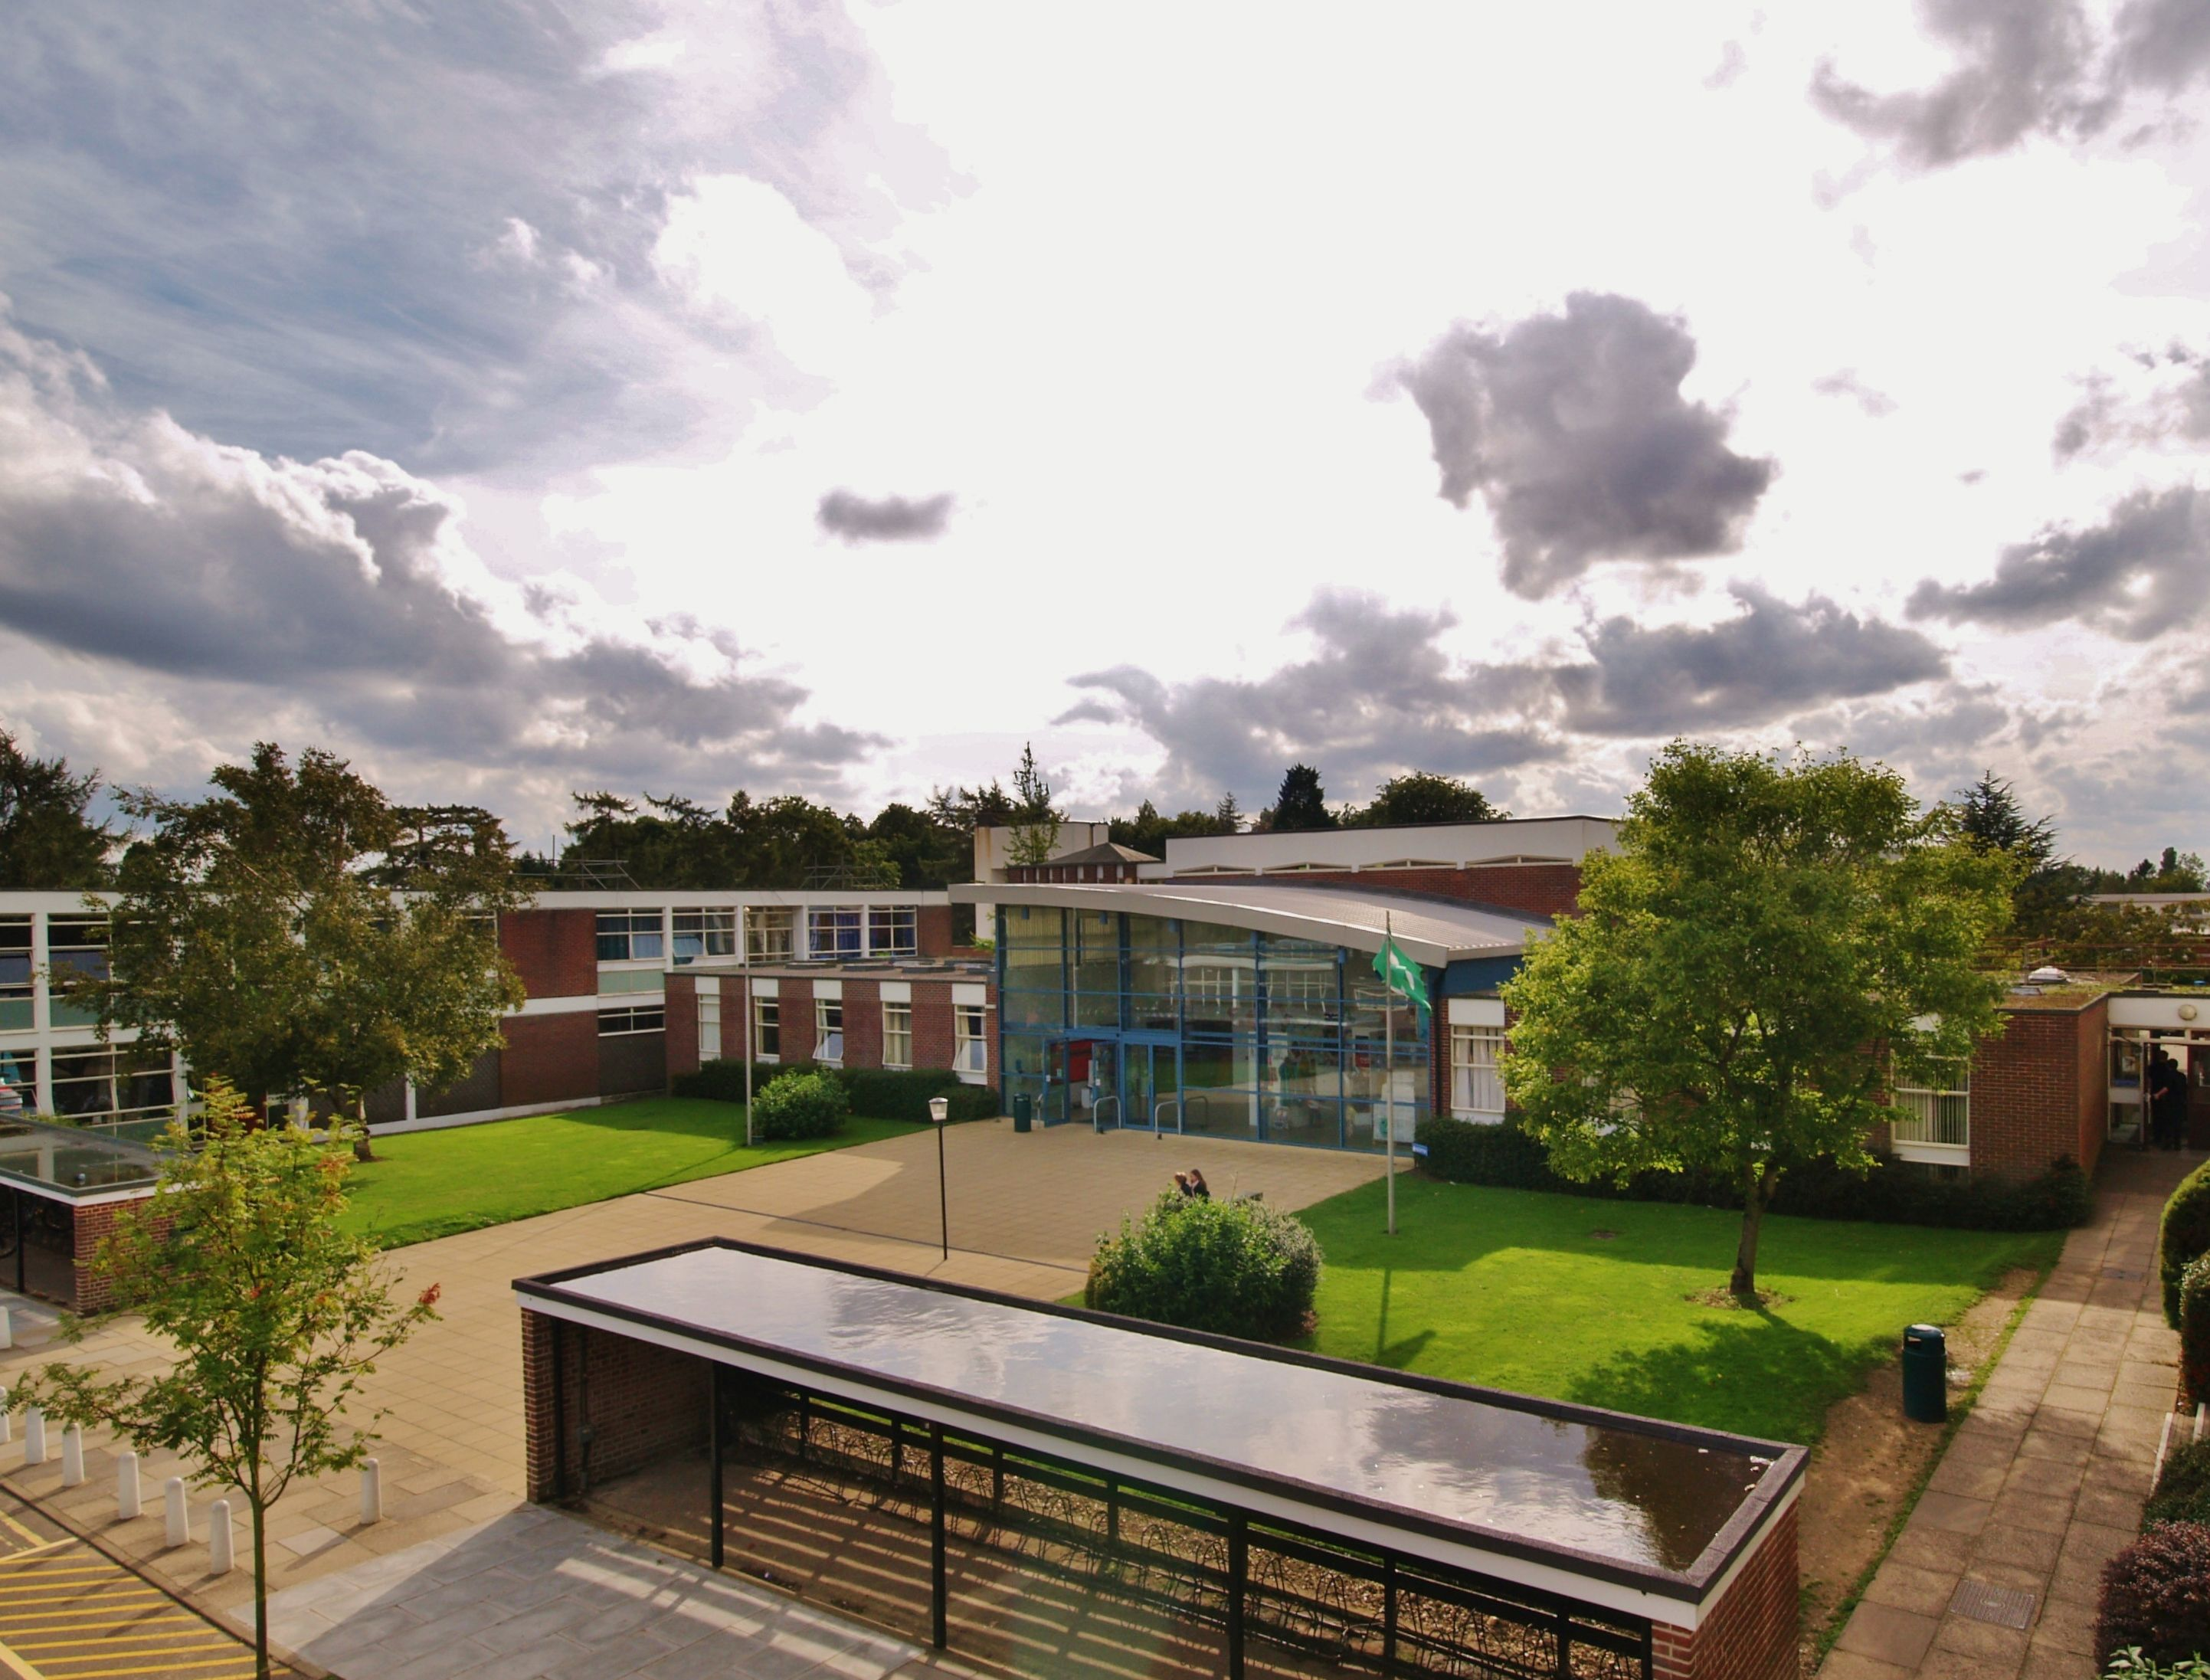 Northgate High School Dereham Norfolk Russen Turner Were Appointed Lead Designers To Provide A New Entrance Roof Architecture Architecture Modern Roofing